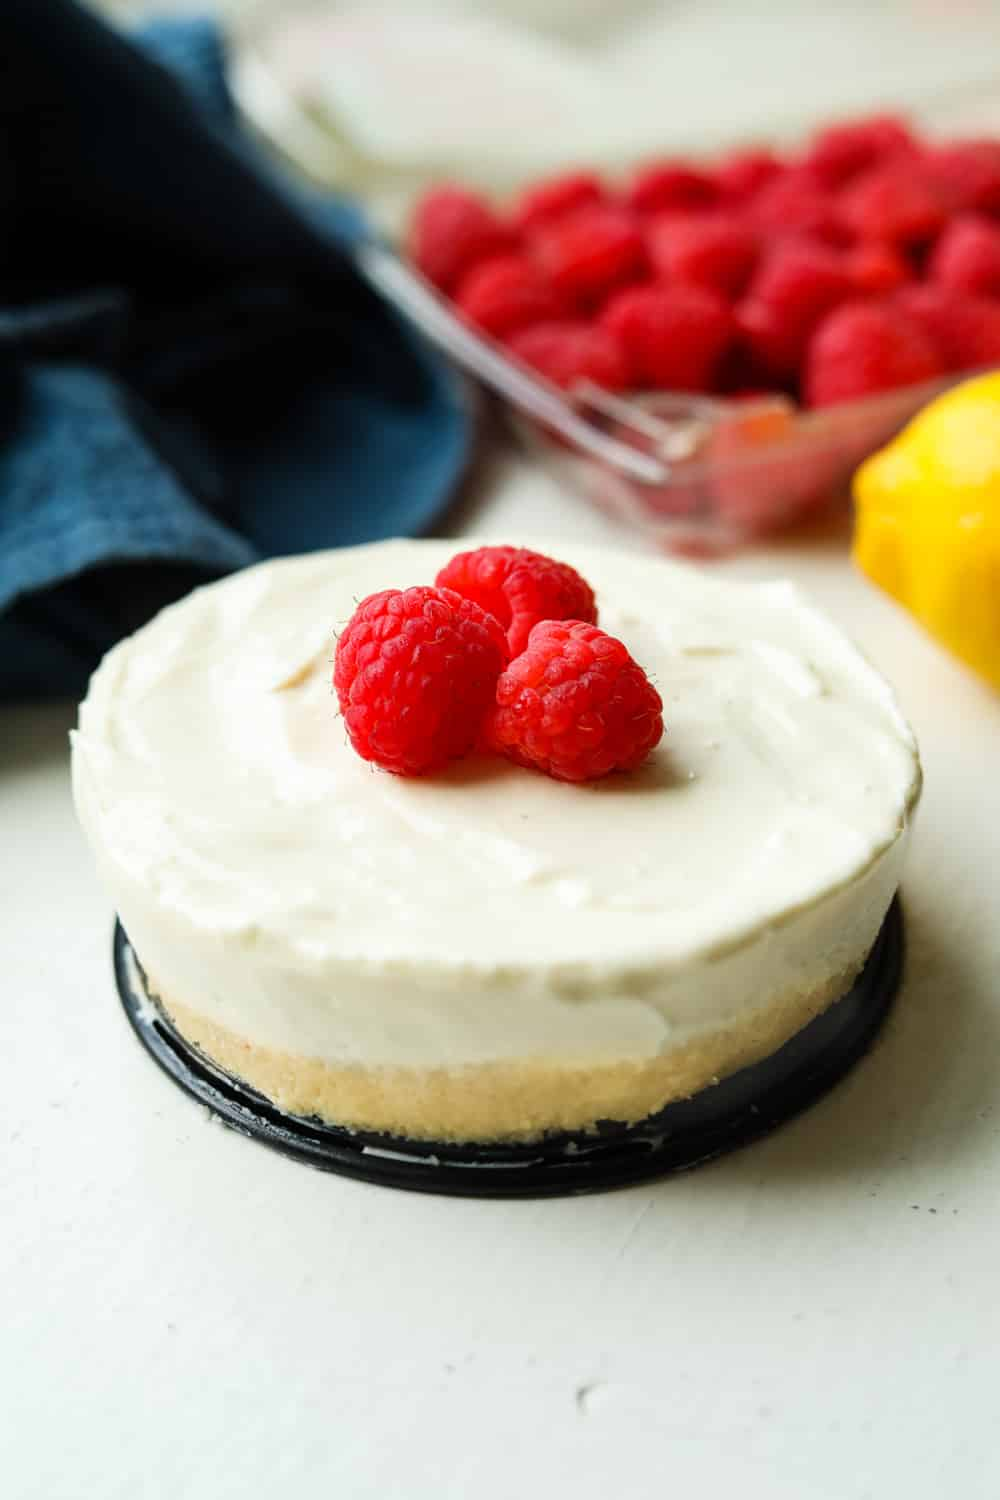 Cheesecake topped with cheesecake with raspberries and lemons set behind it.